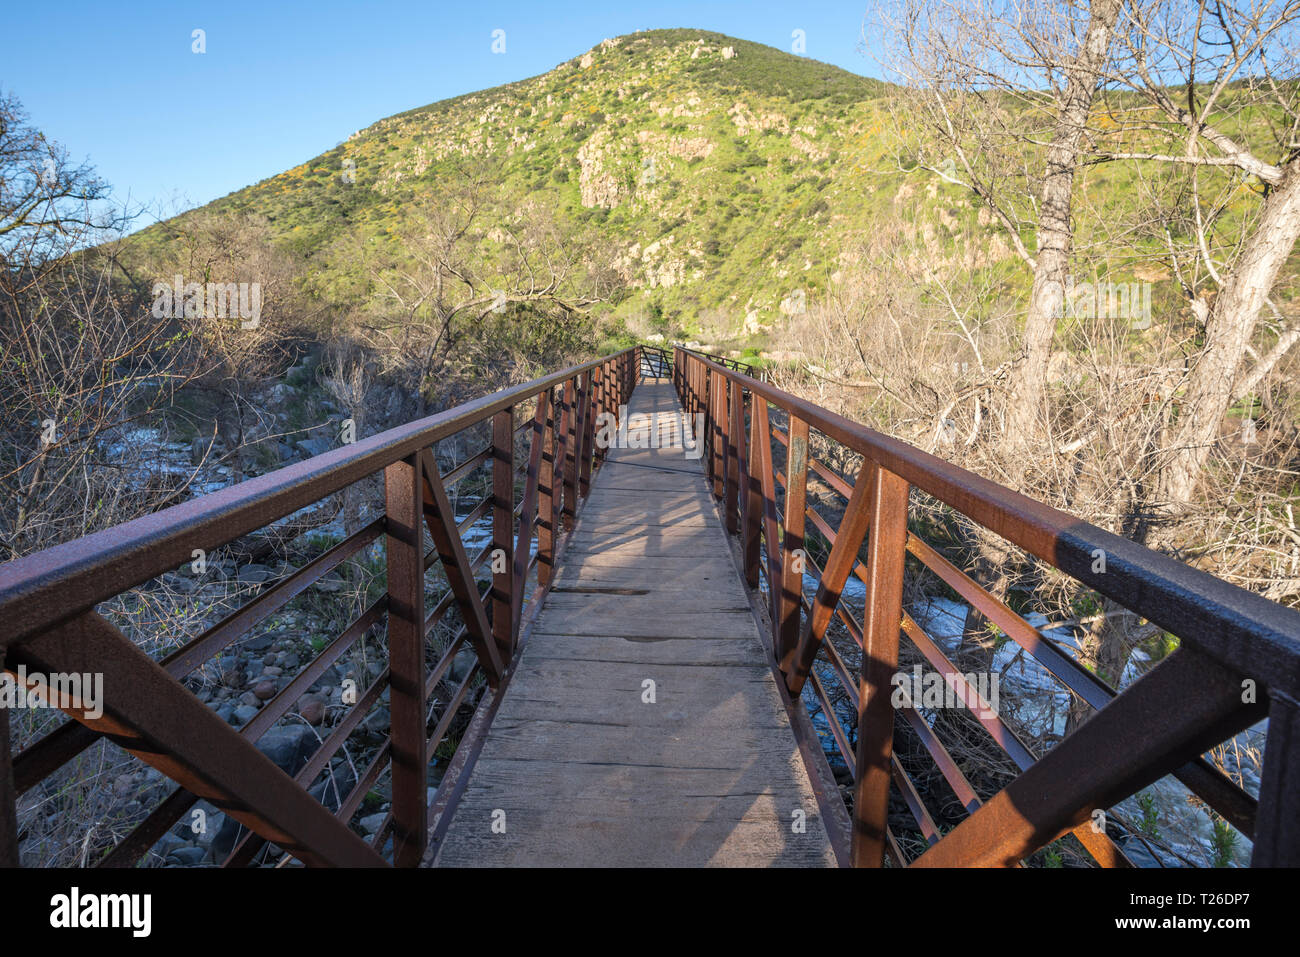 Footbridge on the Oak Canyon Trail. Mission Trails Regional Park, San Diego, California, USA. - Stock Image